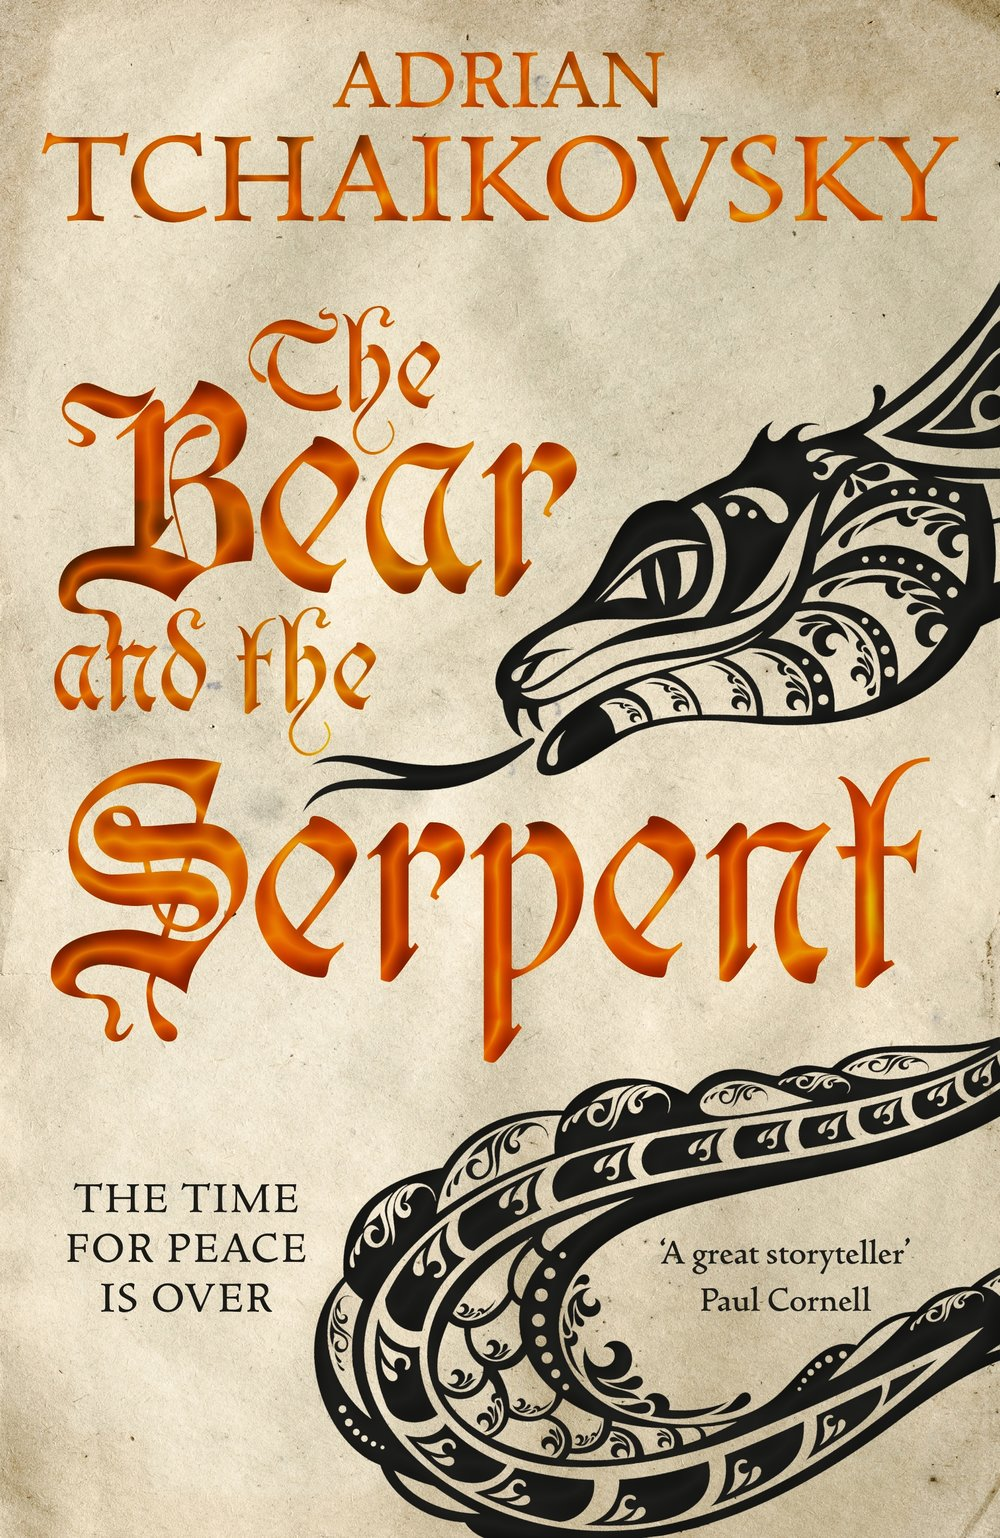 9781509830220The Bear and the Serpent.jpg